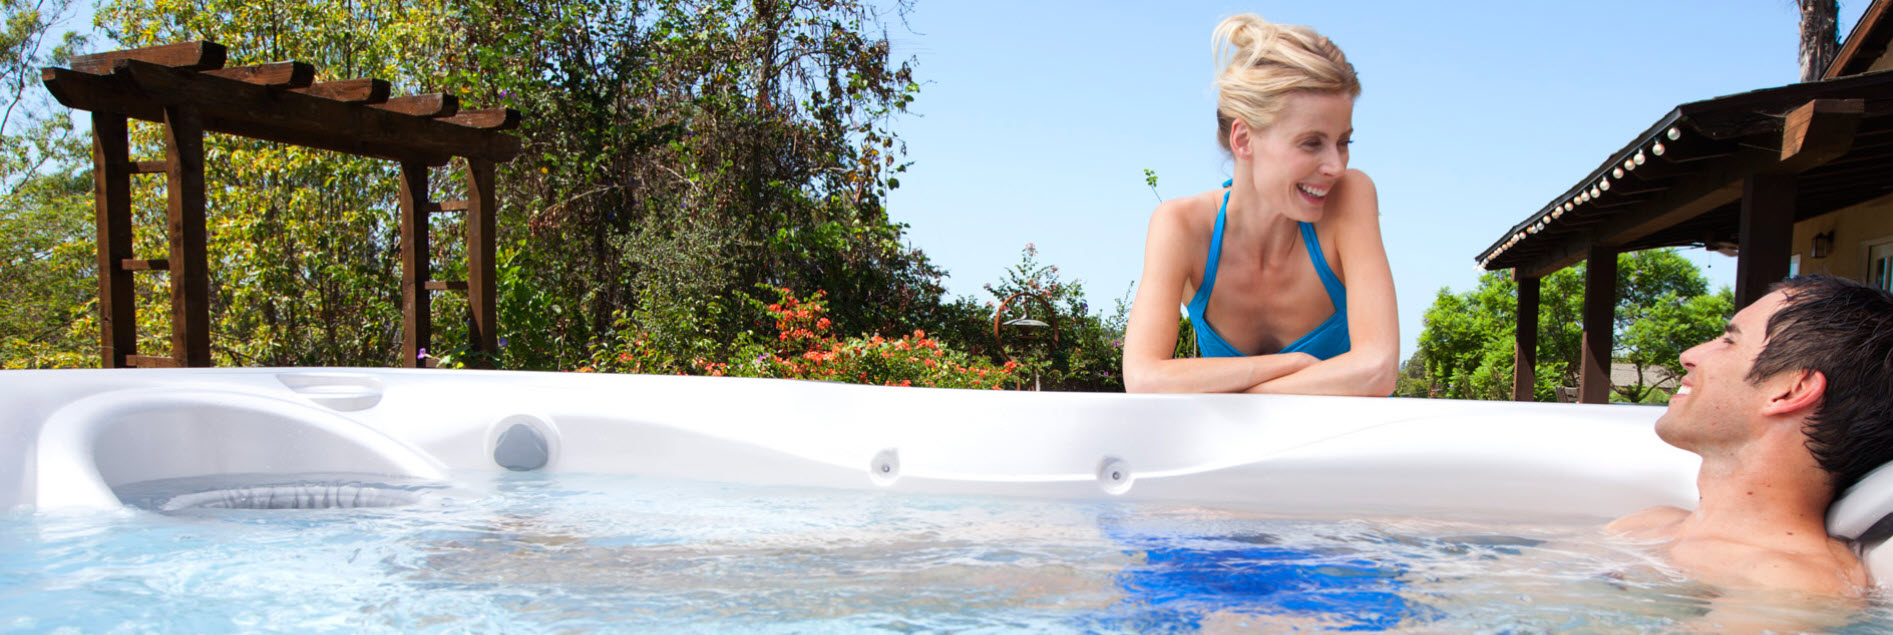 Soak Your Way to Great Sleep in a Hot Tub, Spa Stores Near Plymouth MN